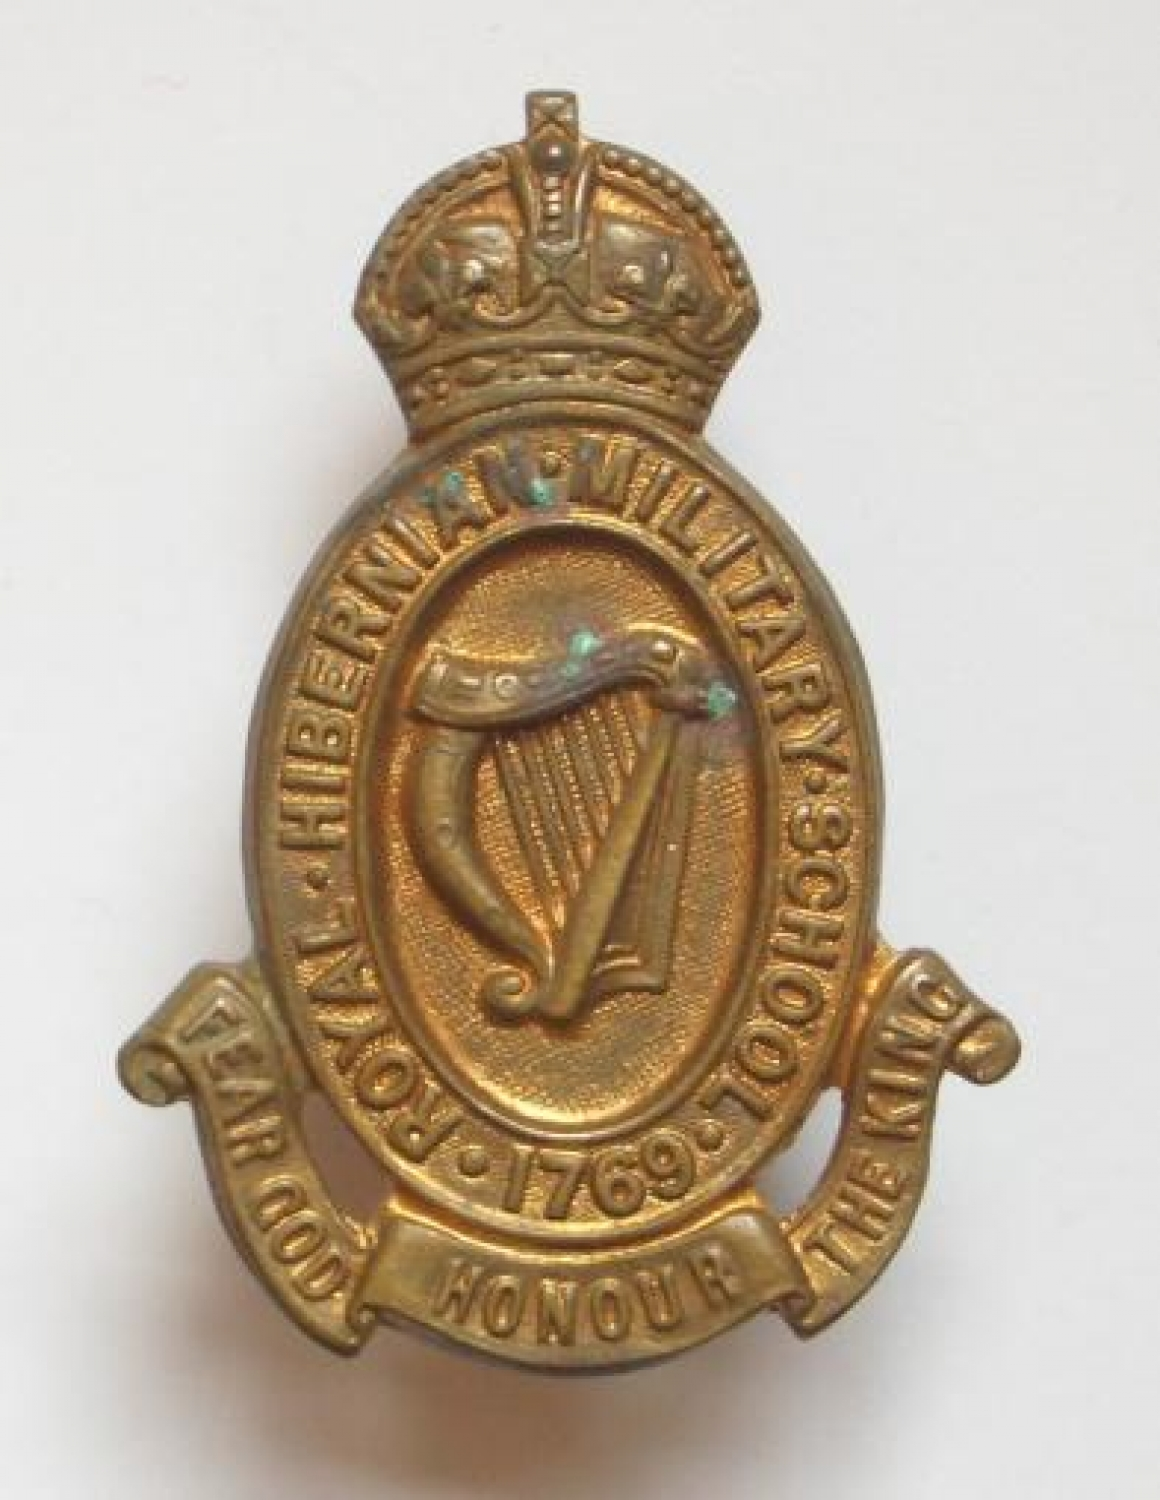 Royal Hibernian Military School badge